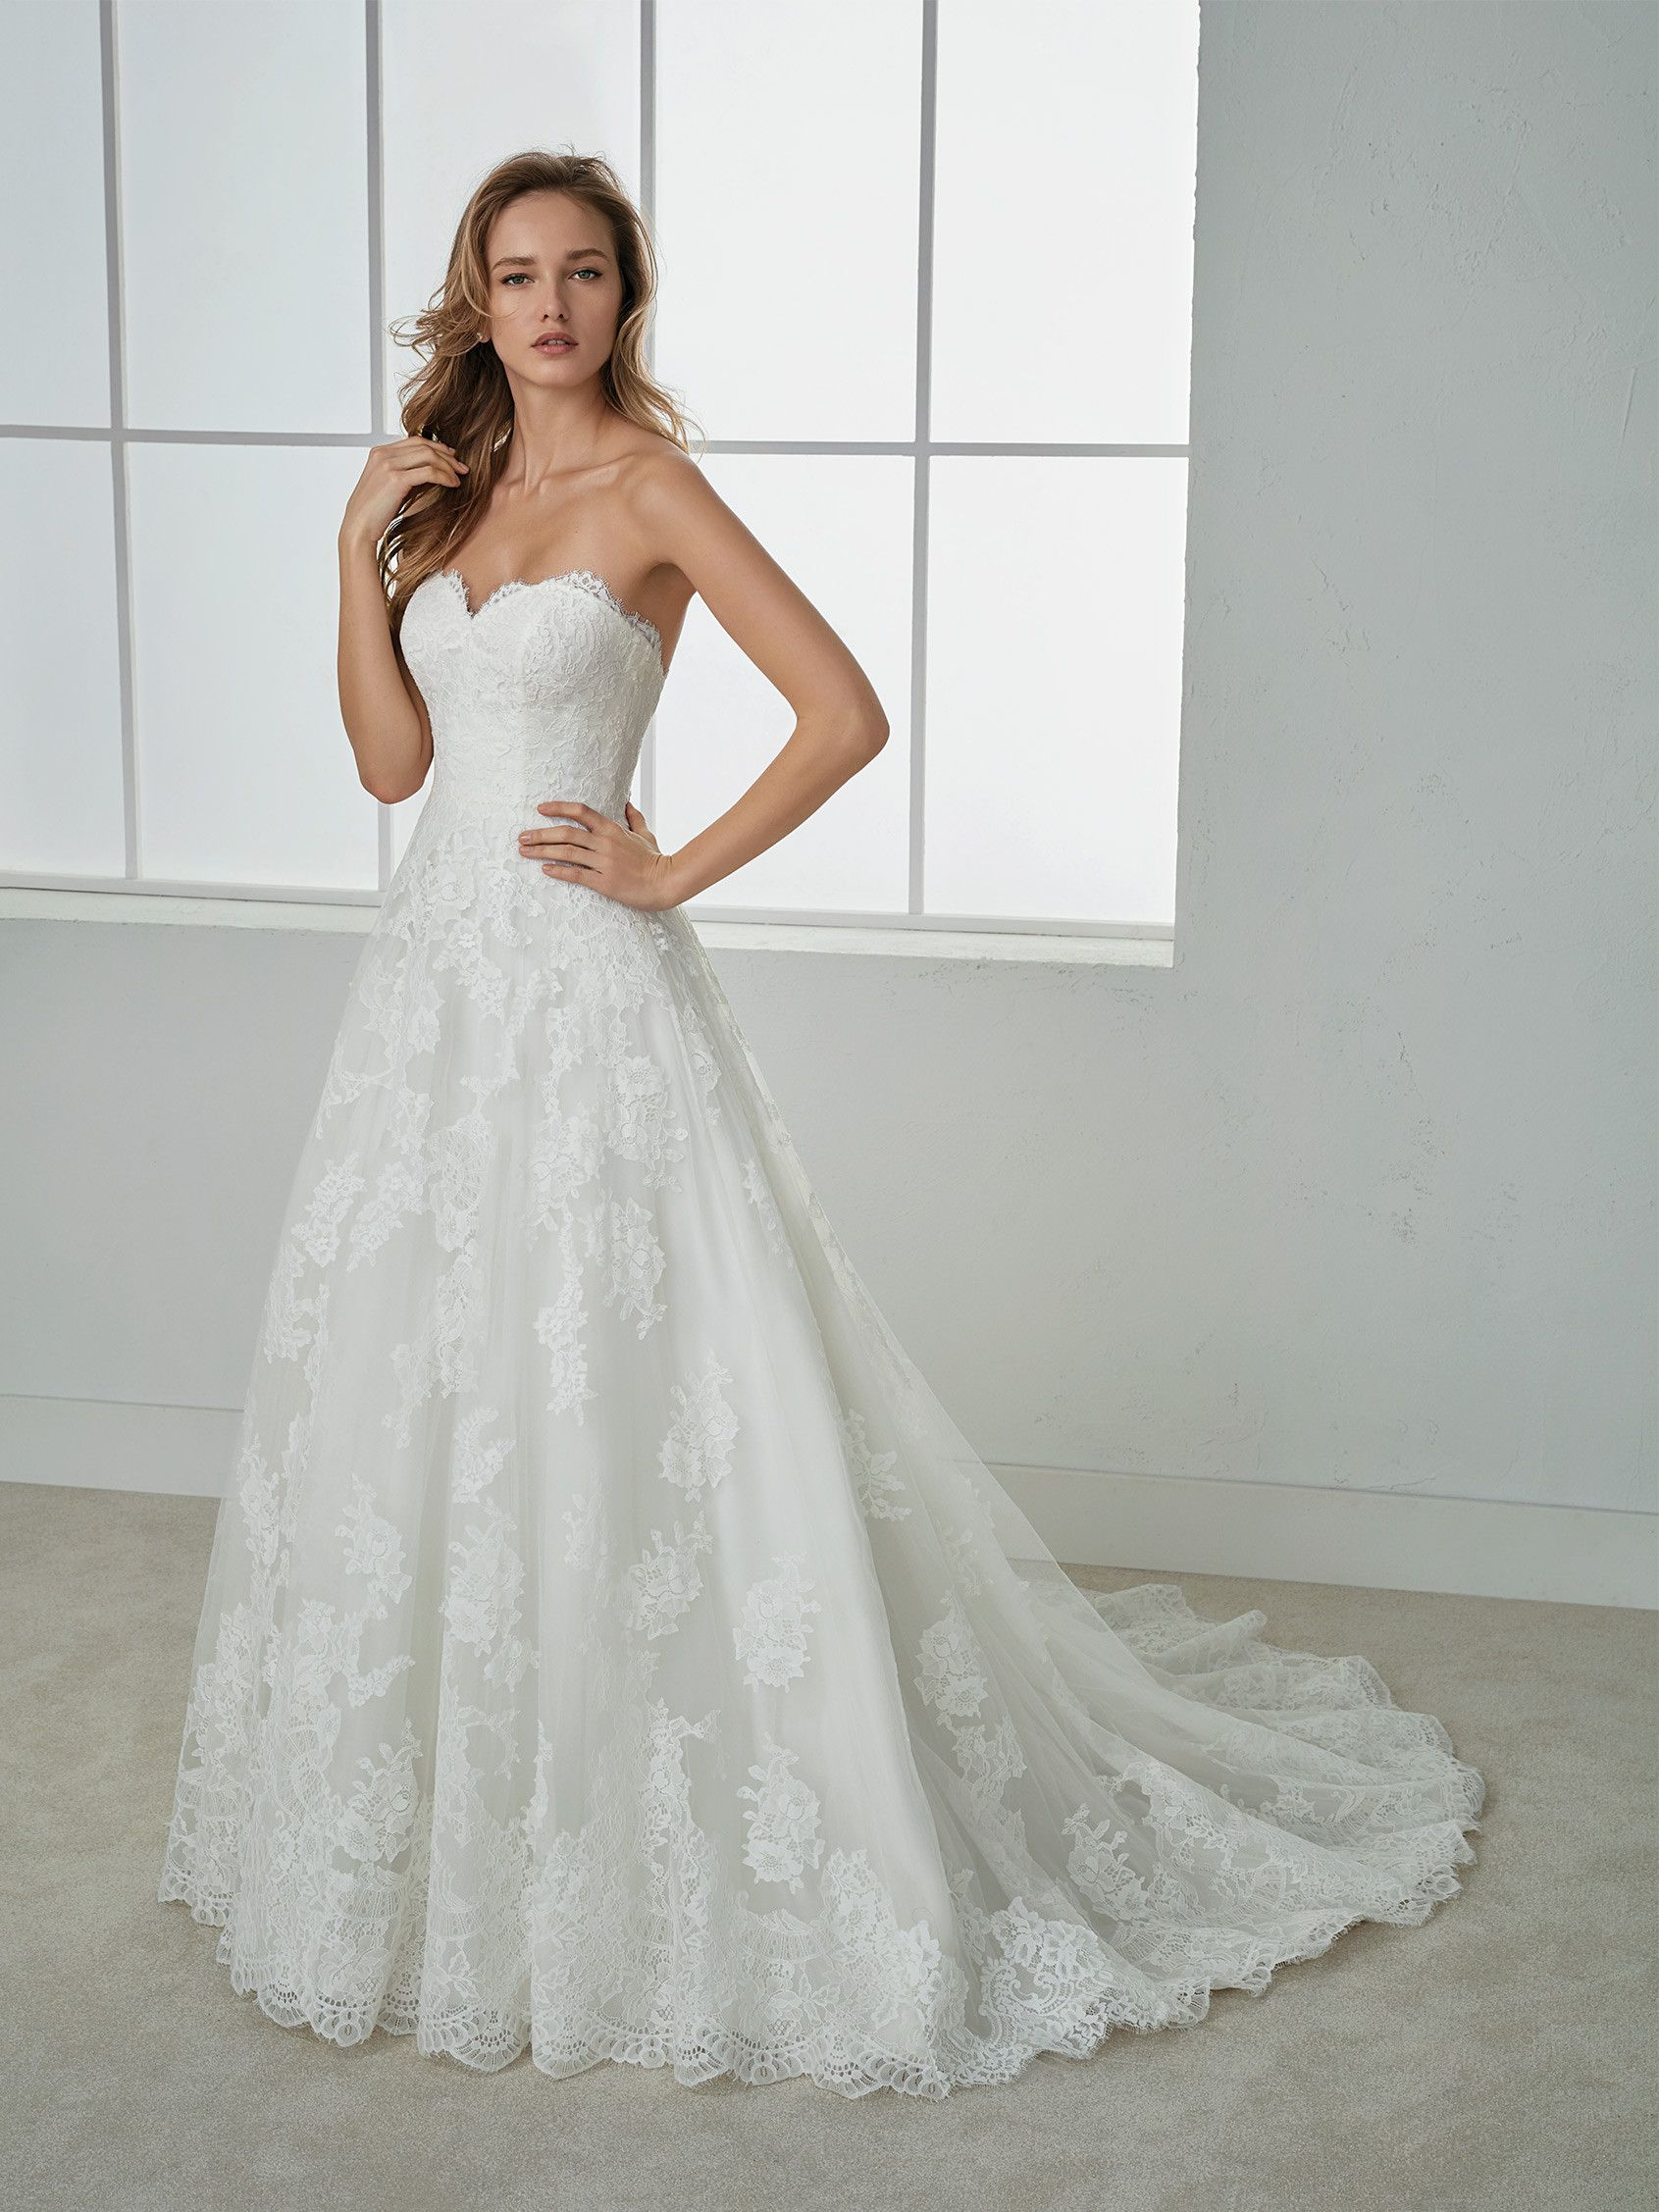 Pin by Marguerite Thompson on Say yes to the dress | Pinterest ...